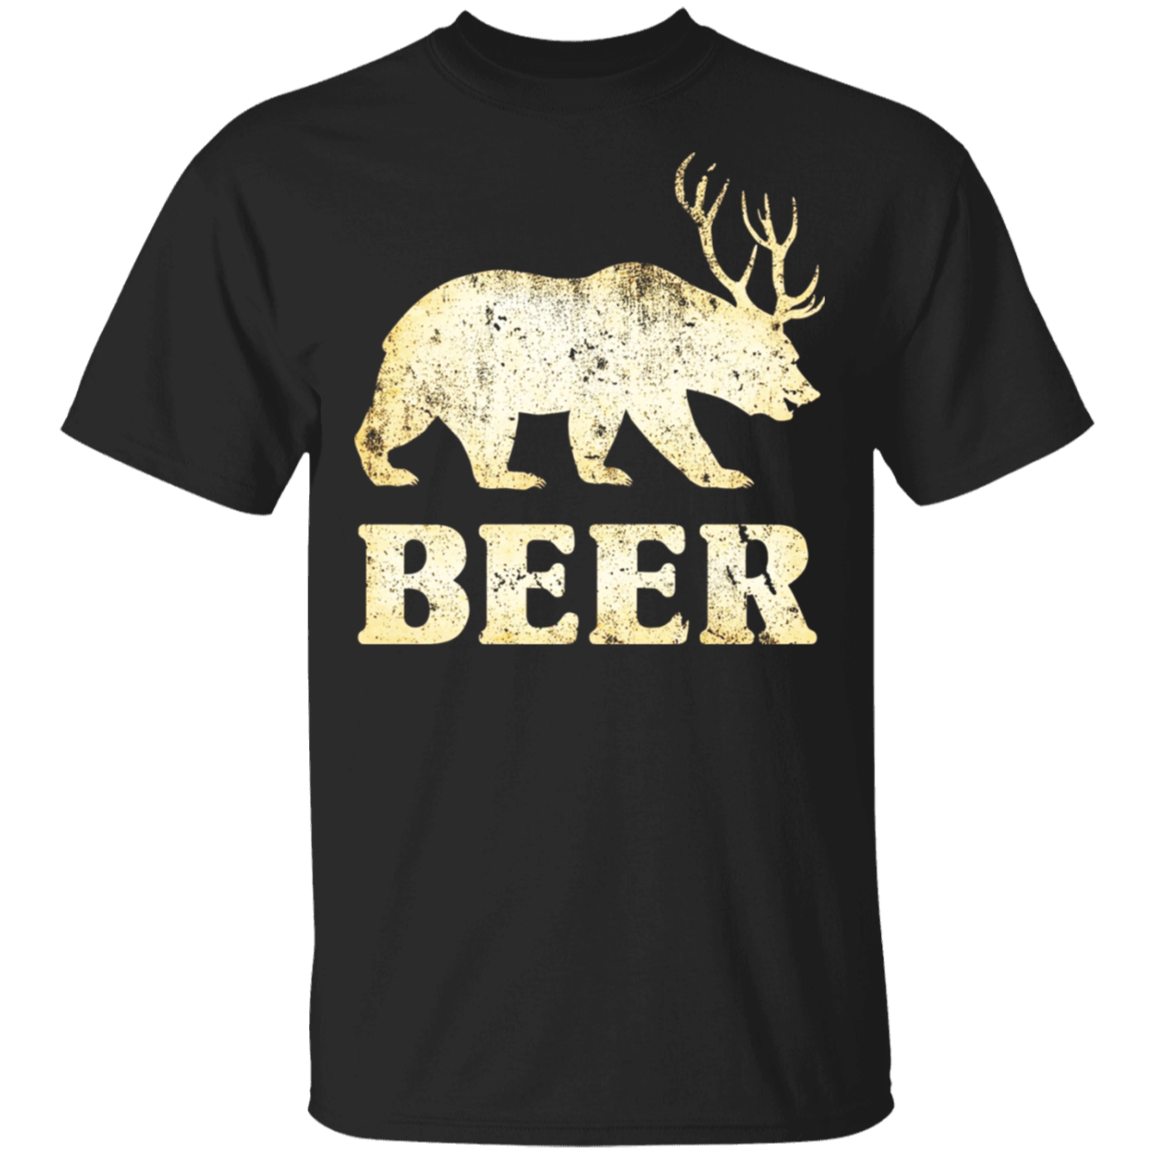 Vintage Bear Deer Beer T-shirt